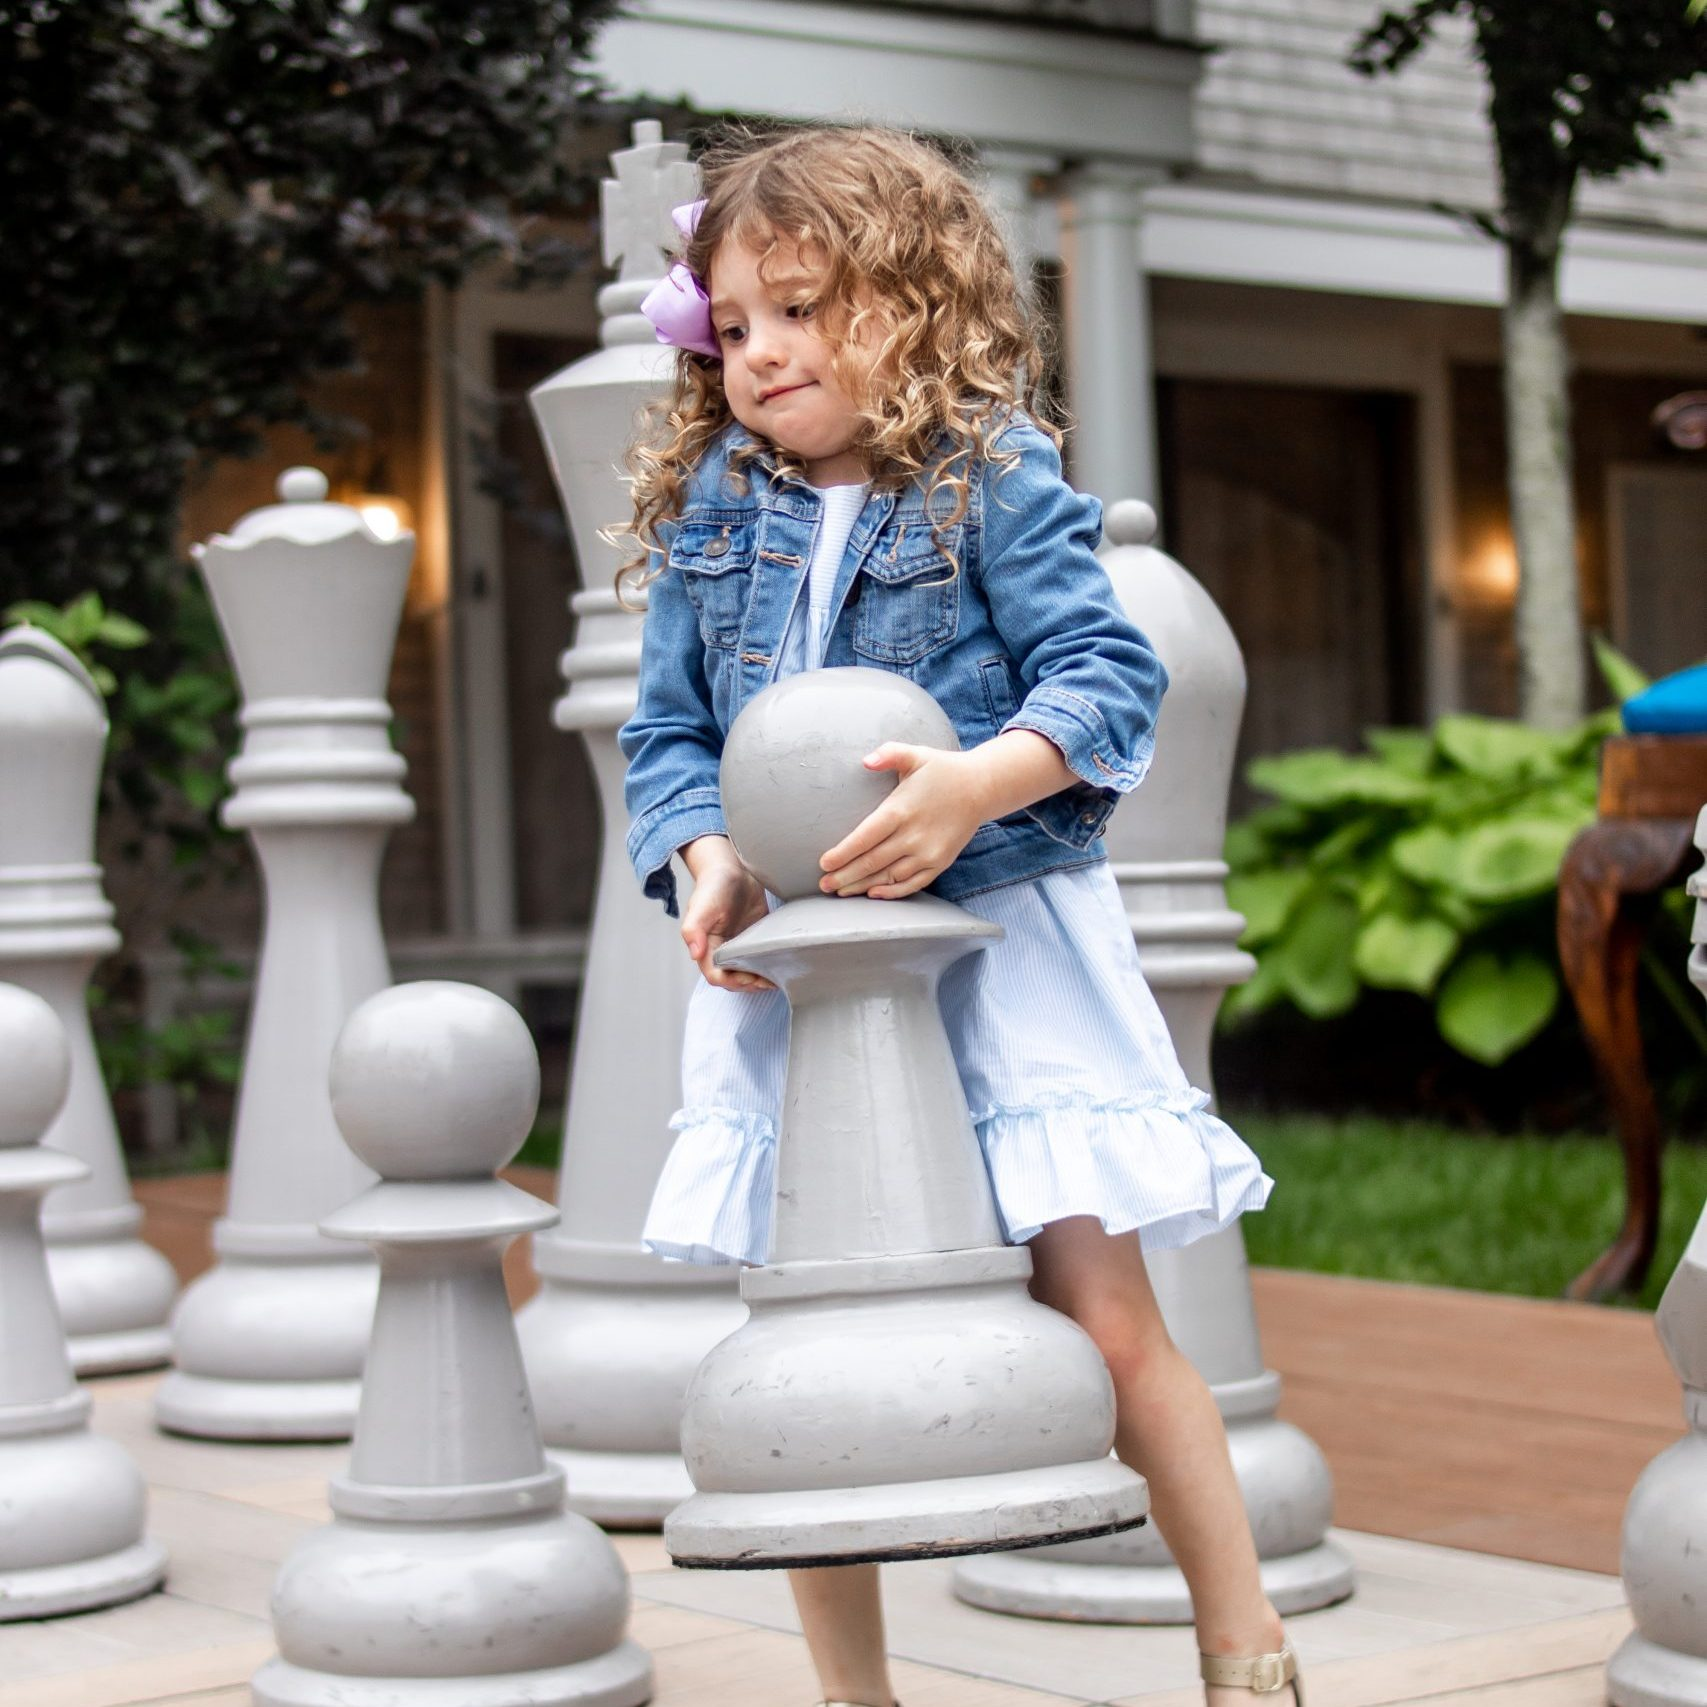 little girl moving giant chess piece